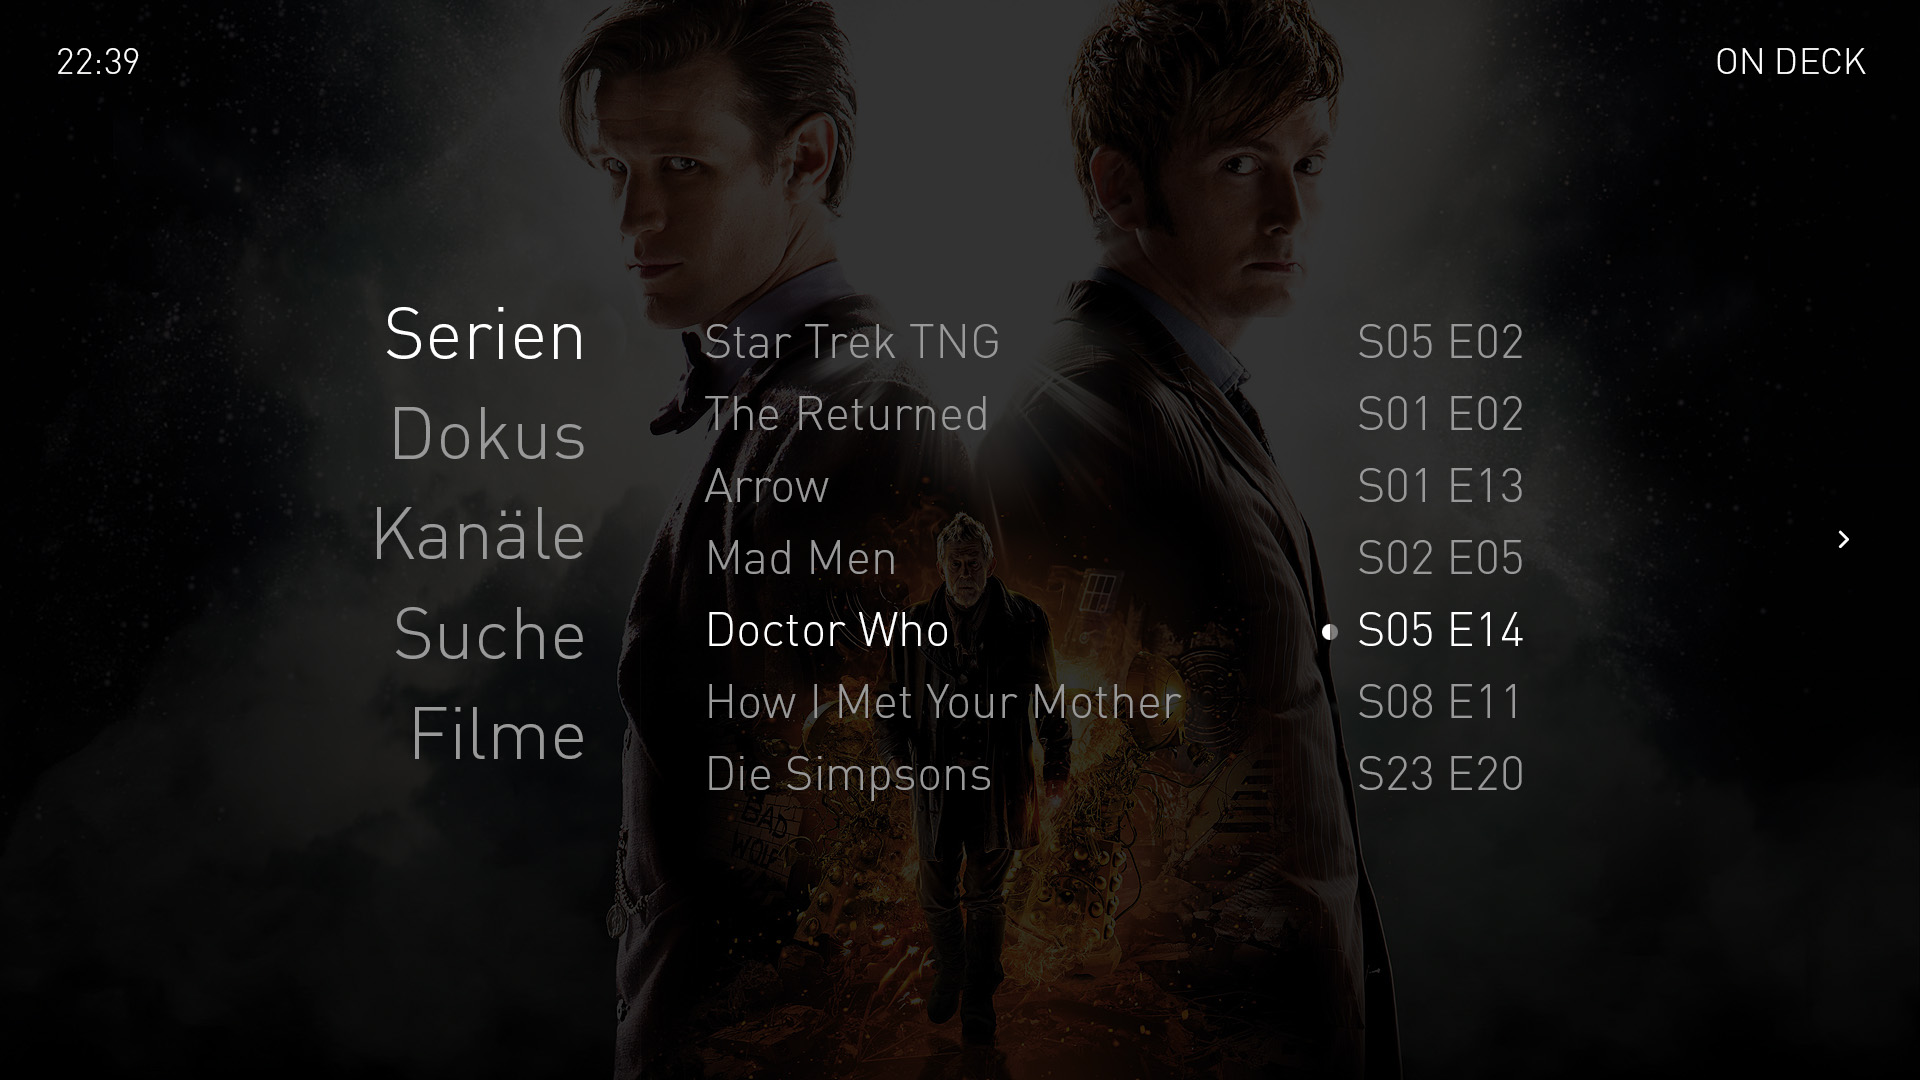 Plex_Neue__0005_TV%20-%20On%20Deck.jpg